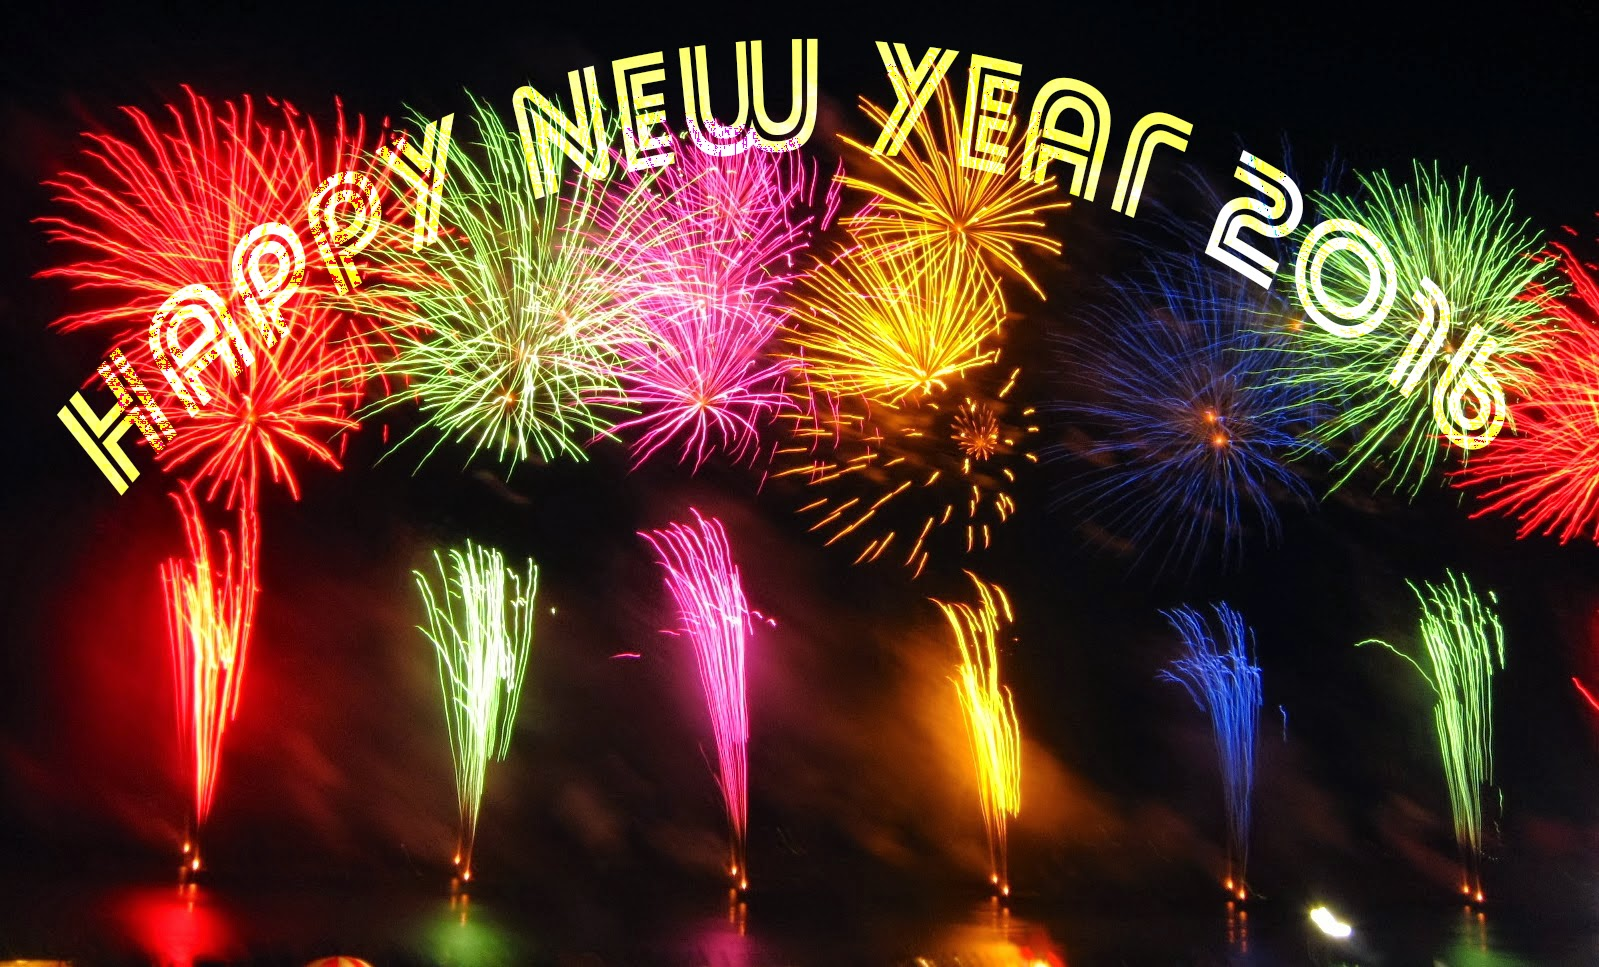 Wallpaper download new year -  New Year 2016 Live Wallpaper About Latest Posts